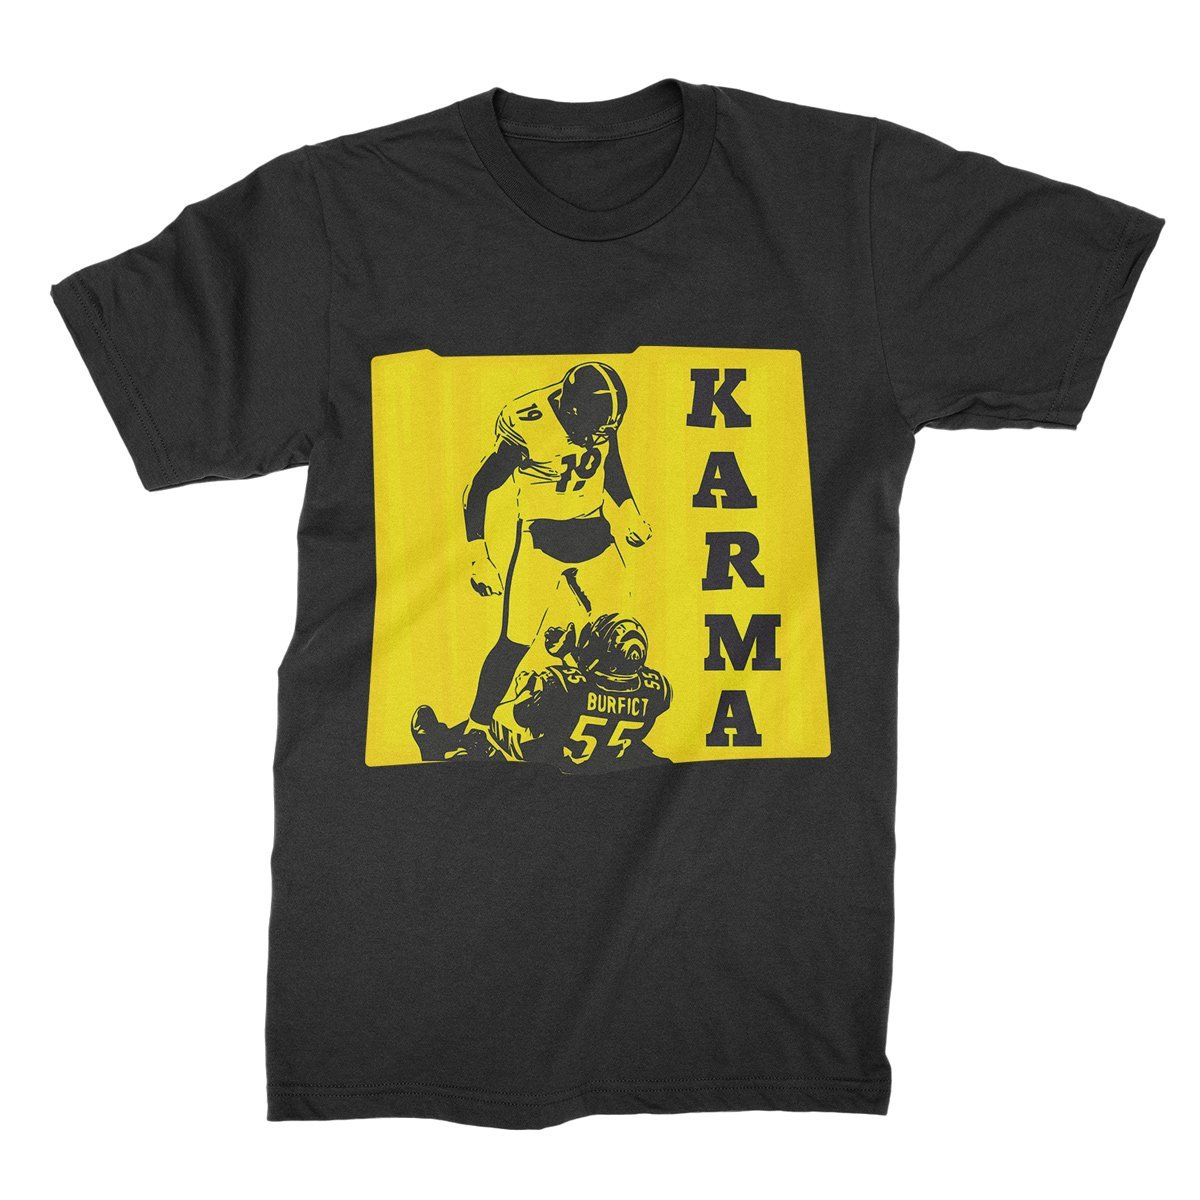 2853910e510 Steelers Karma Shirt JuJu Smith Schuster T-Shirt JuJu Karma Tee Antonio  Brown Karma Tshirt